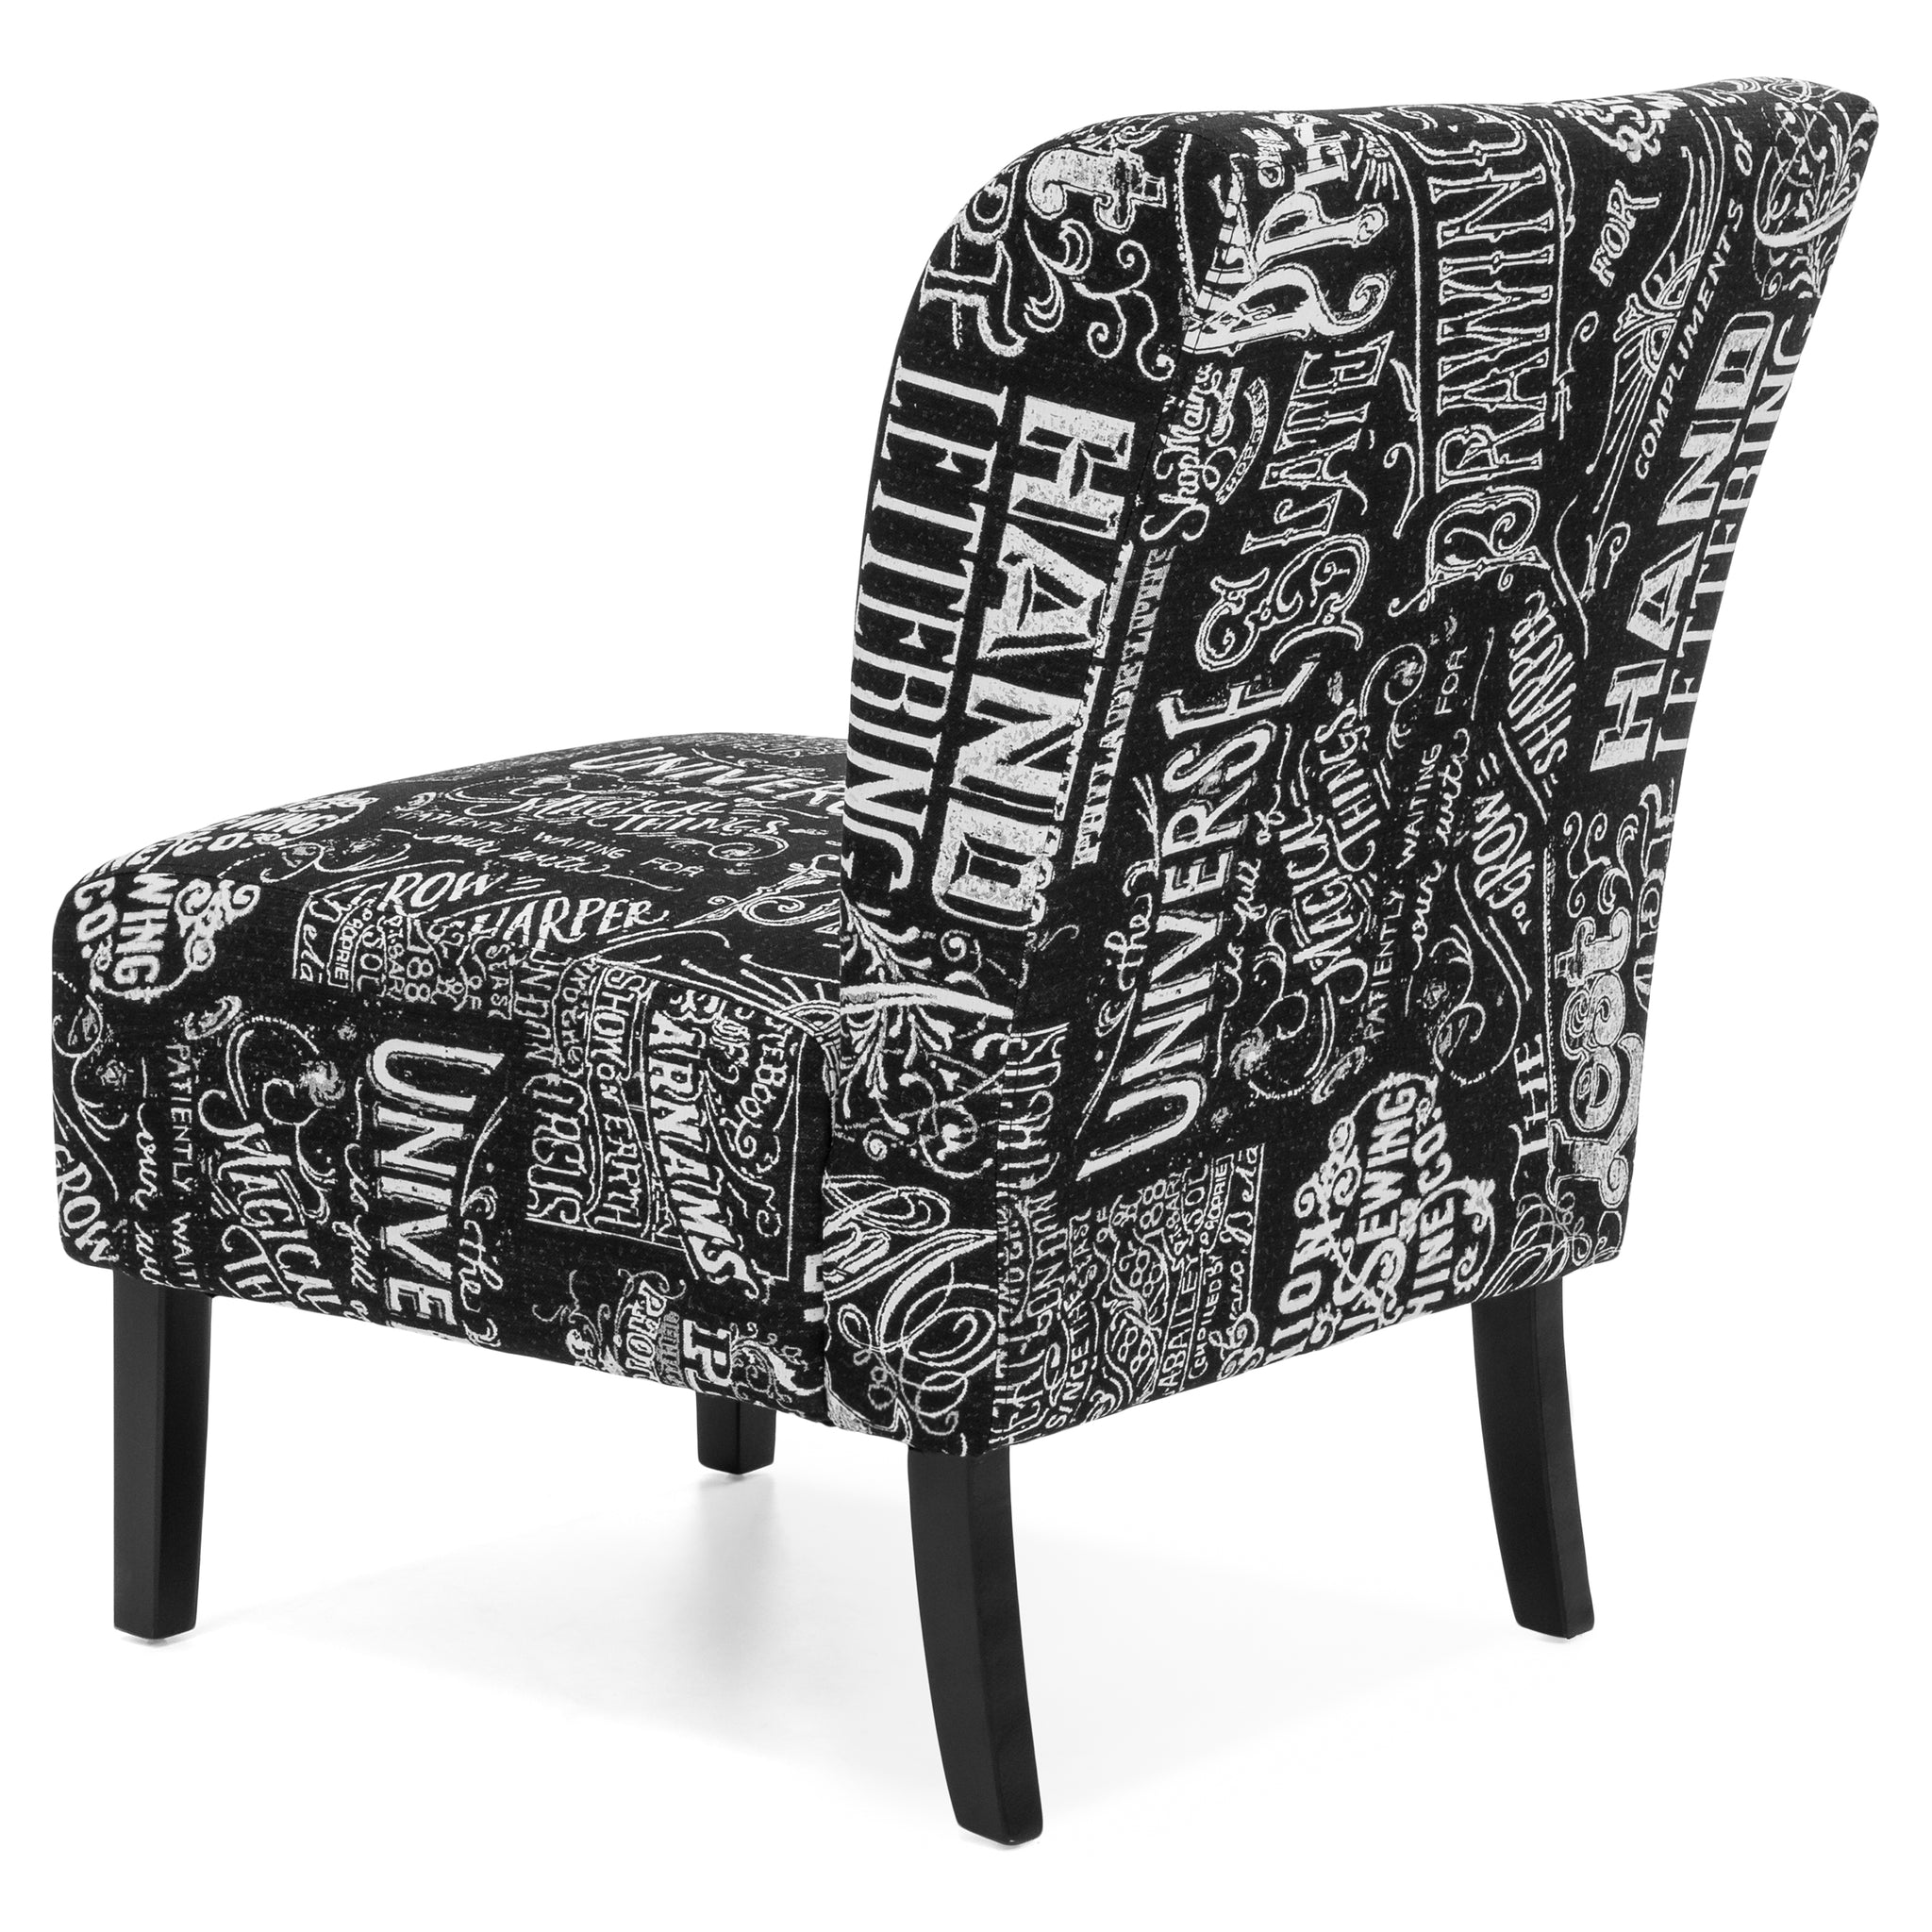 Modern Contemporary Upholstered Accent Chair Black White – Best